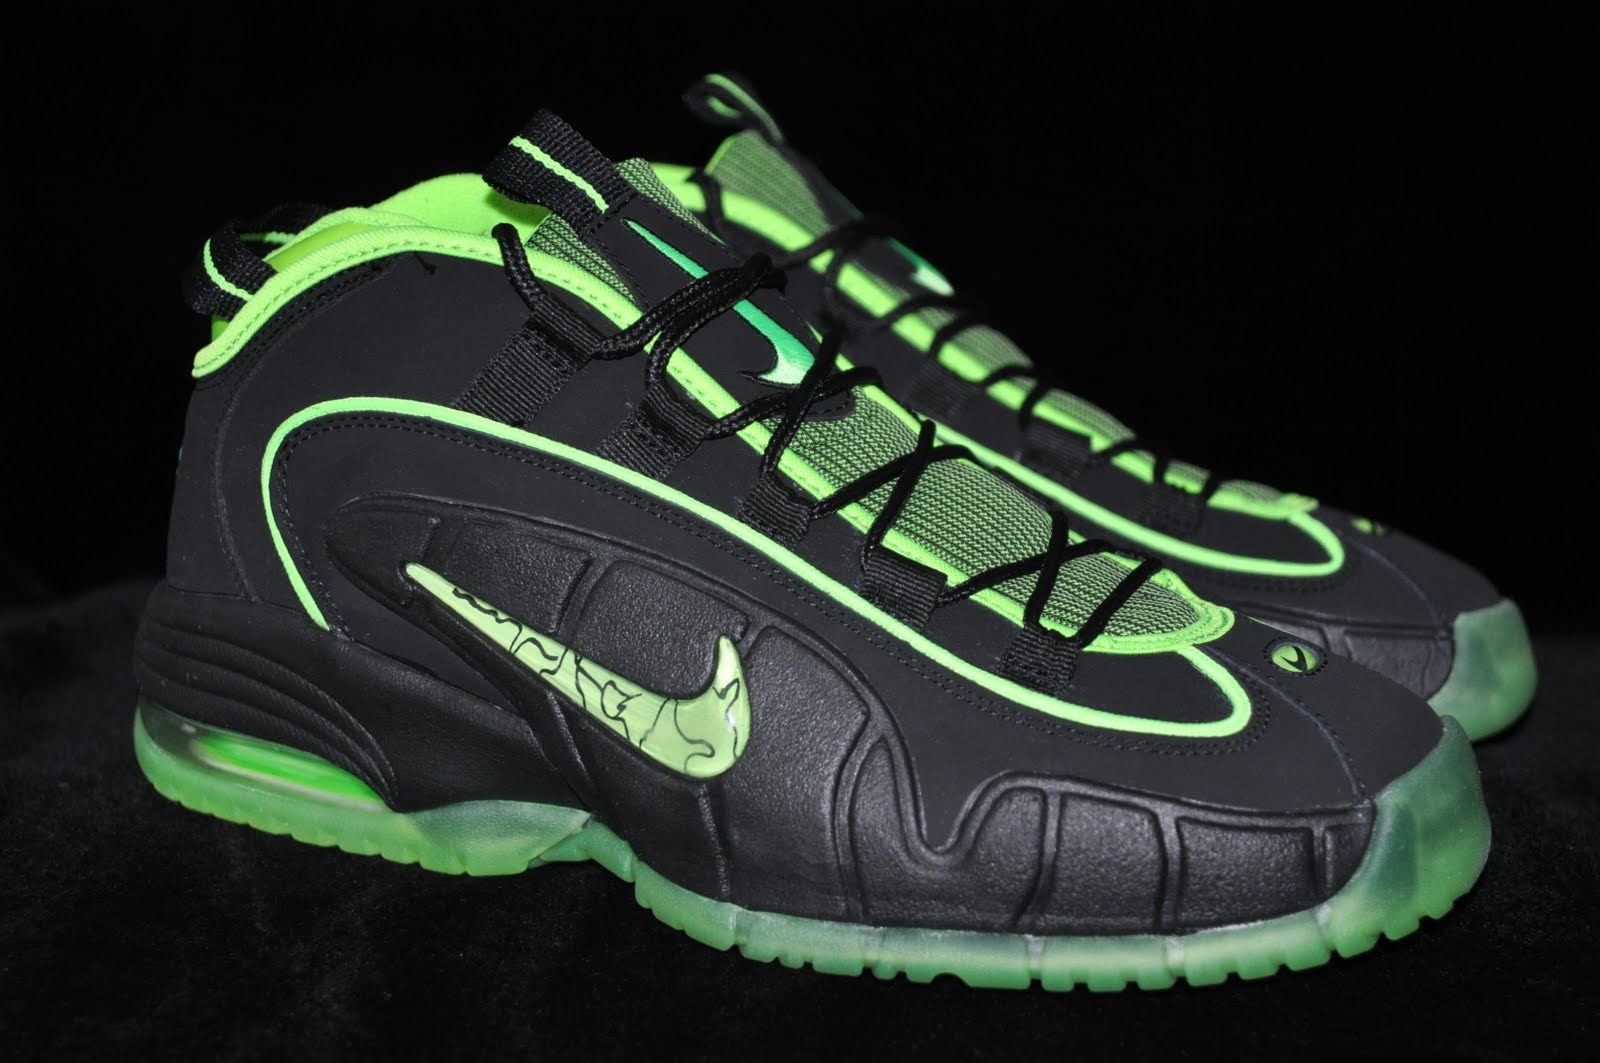 detailed look faf0e ee326 Air Max Penny 5 HOH. Picked up the black electric green Penny s and  Foamposites today. These were only released at the House of Hoops.